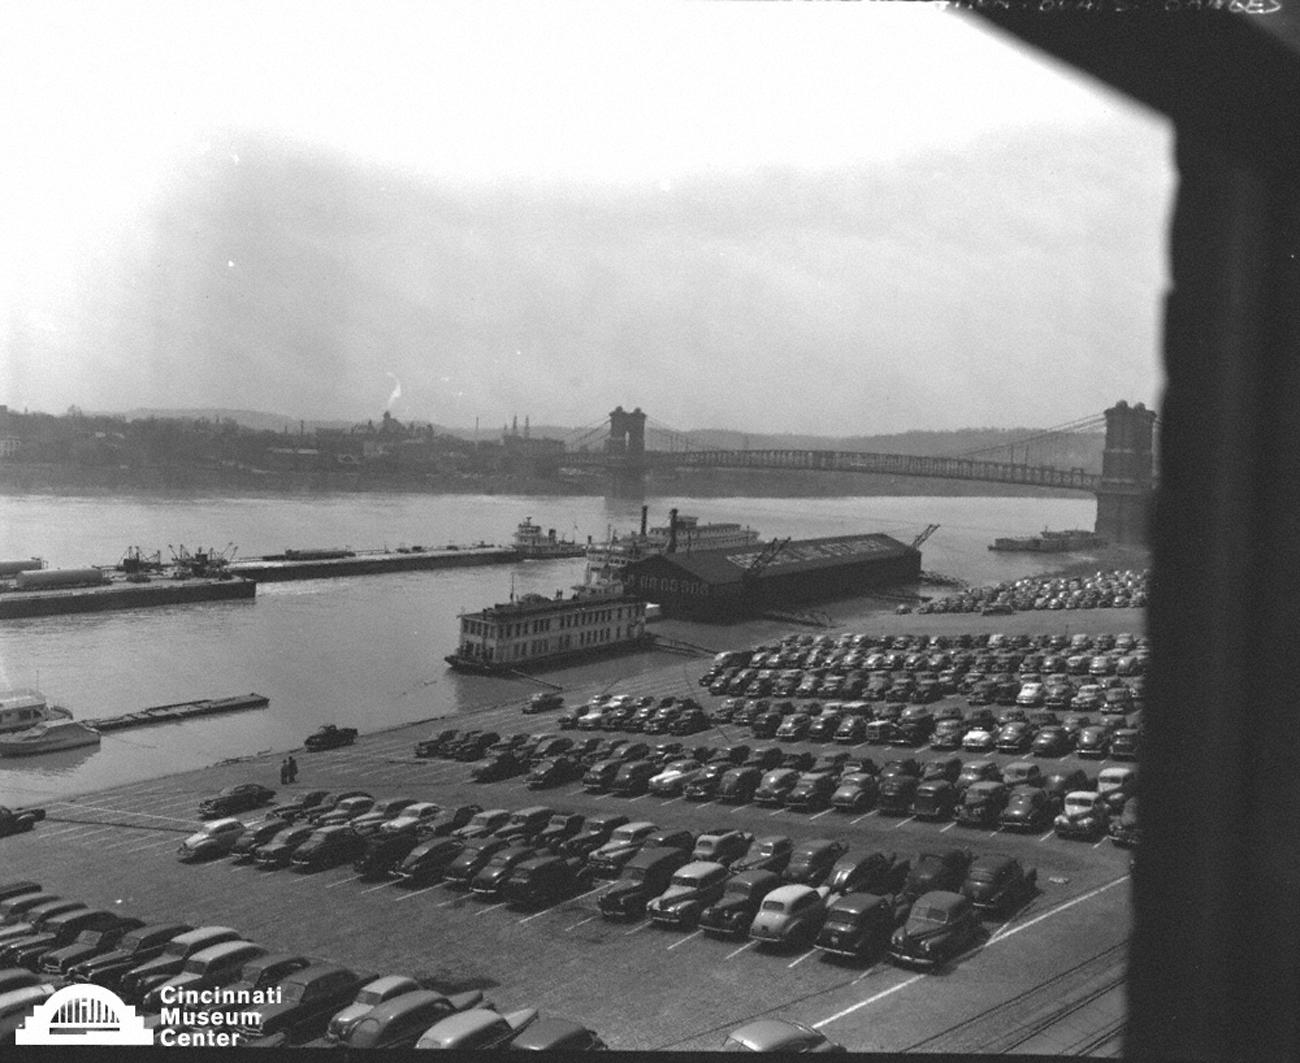 Cincinnati Riverfront in the early 20th Century / Image: Paul Briol,  accessed via the Cincinnati Museum Center History Library and Archives // Published: 2.16.19